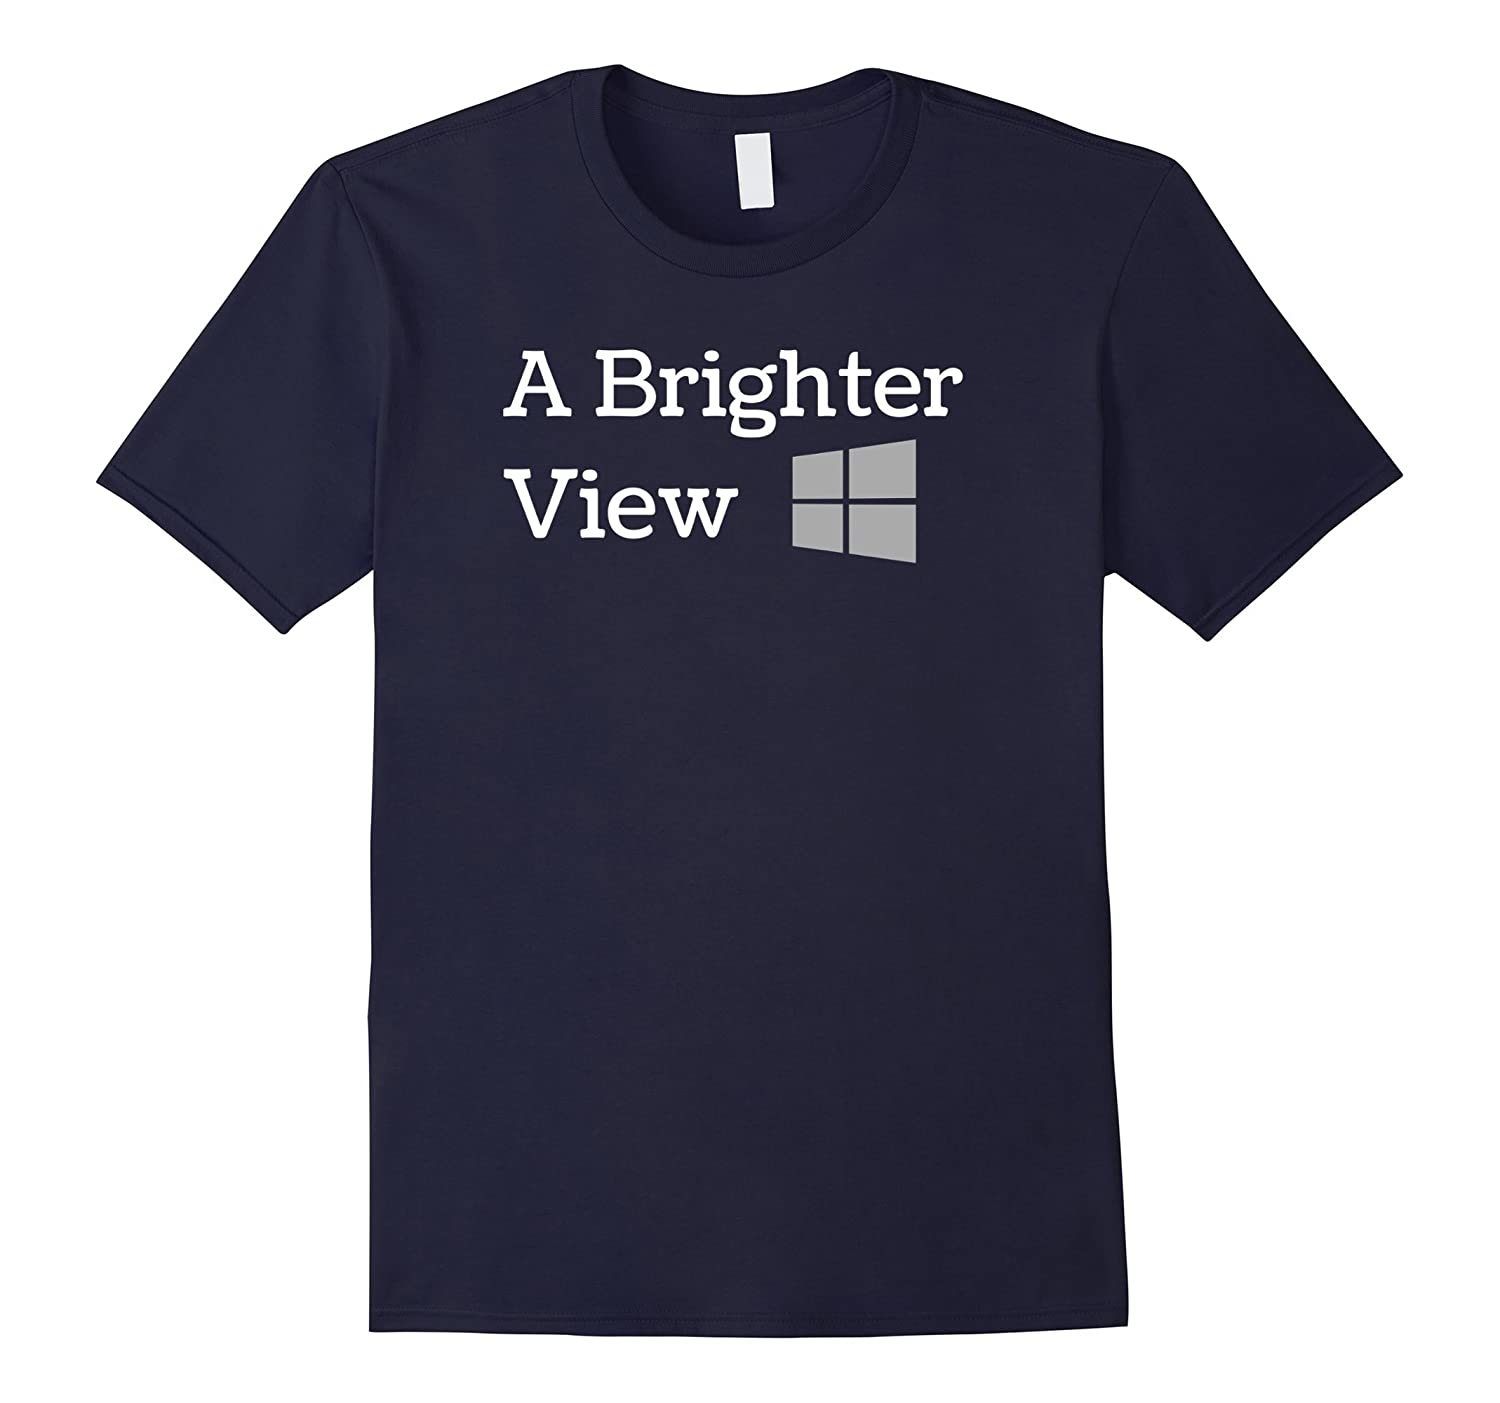 A Brighter View on Life T Shirt for a Happy Positive Look-Art